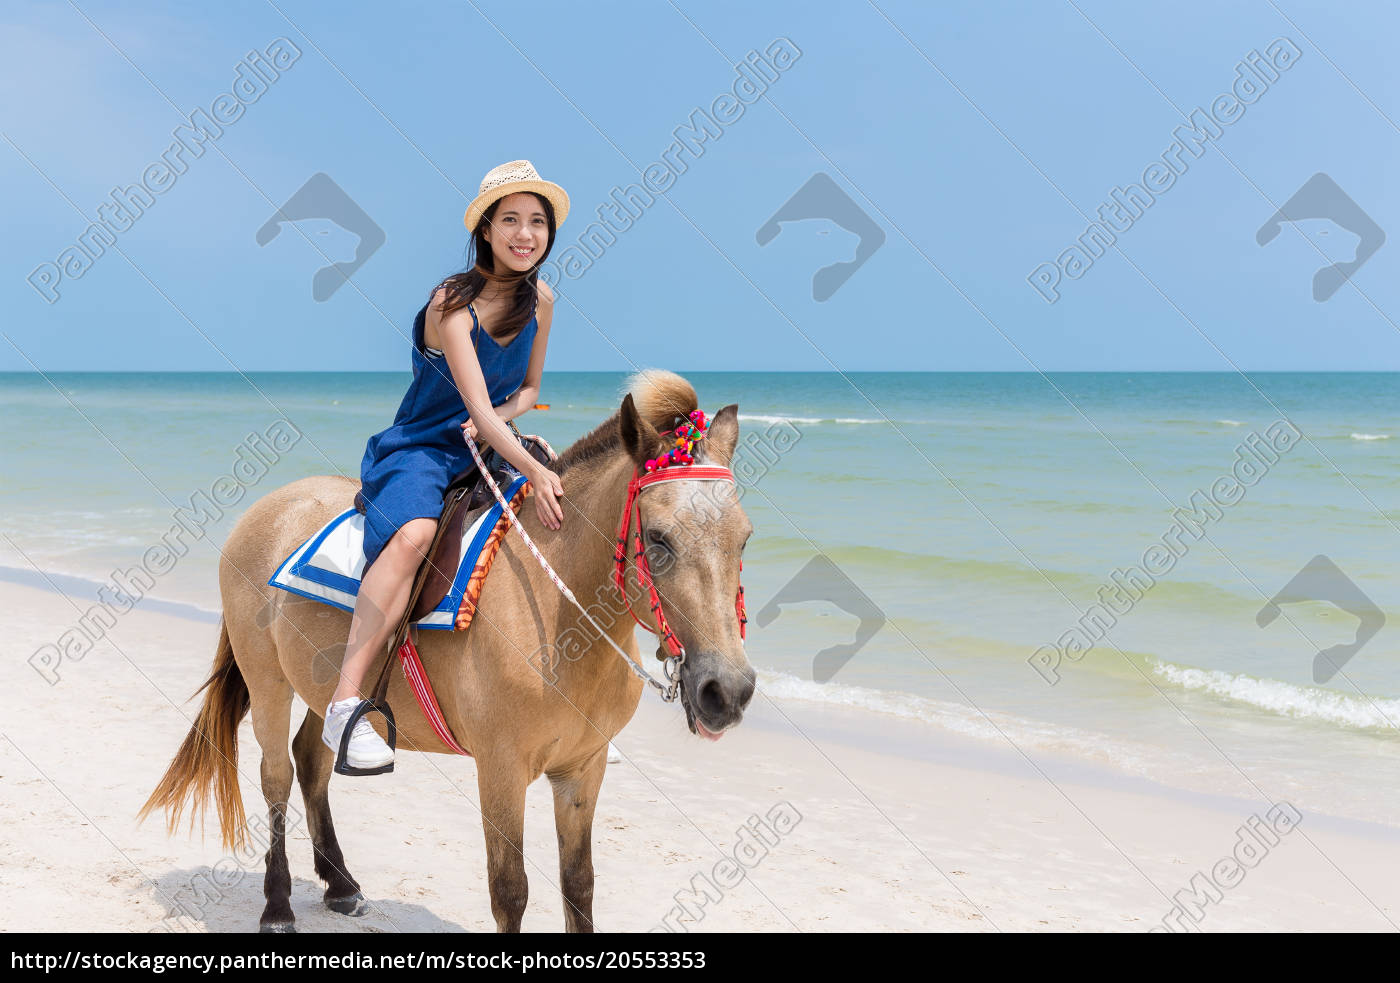 woman, riding, horse, on, beautiful, sand - 20553353